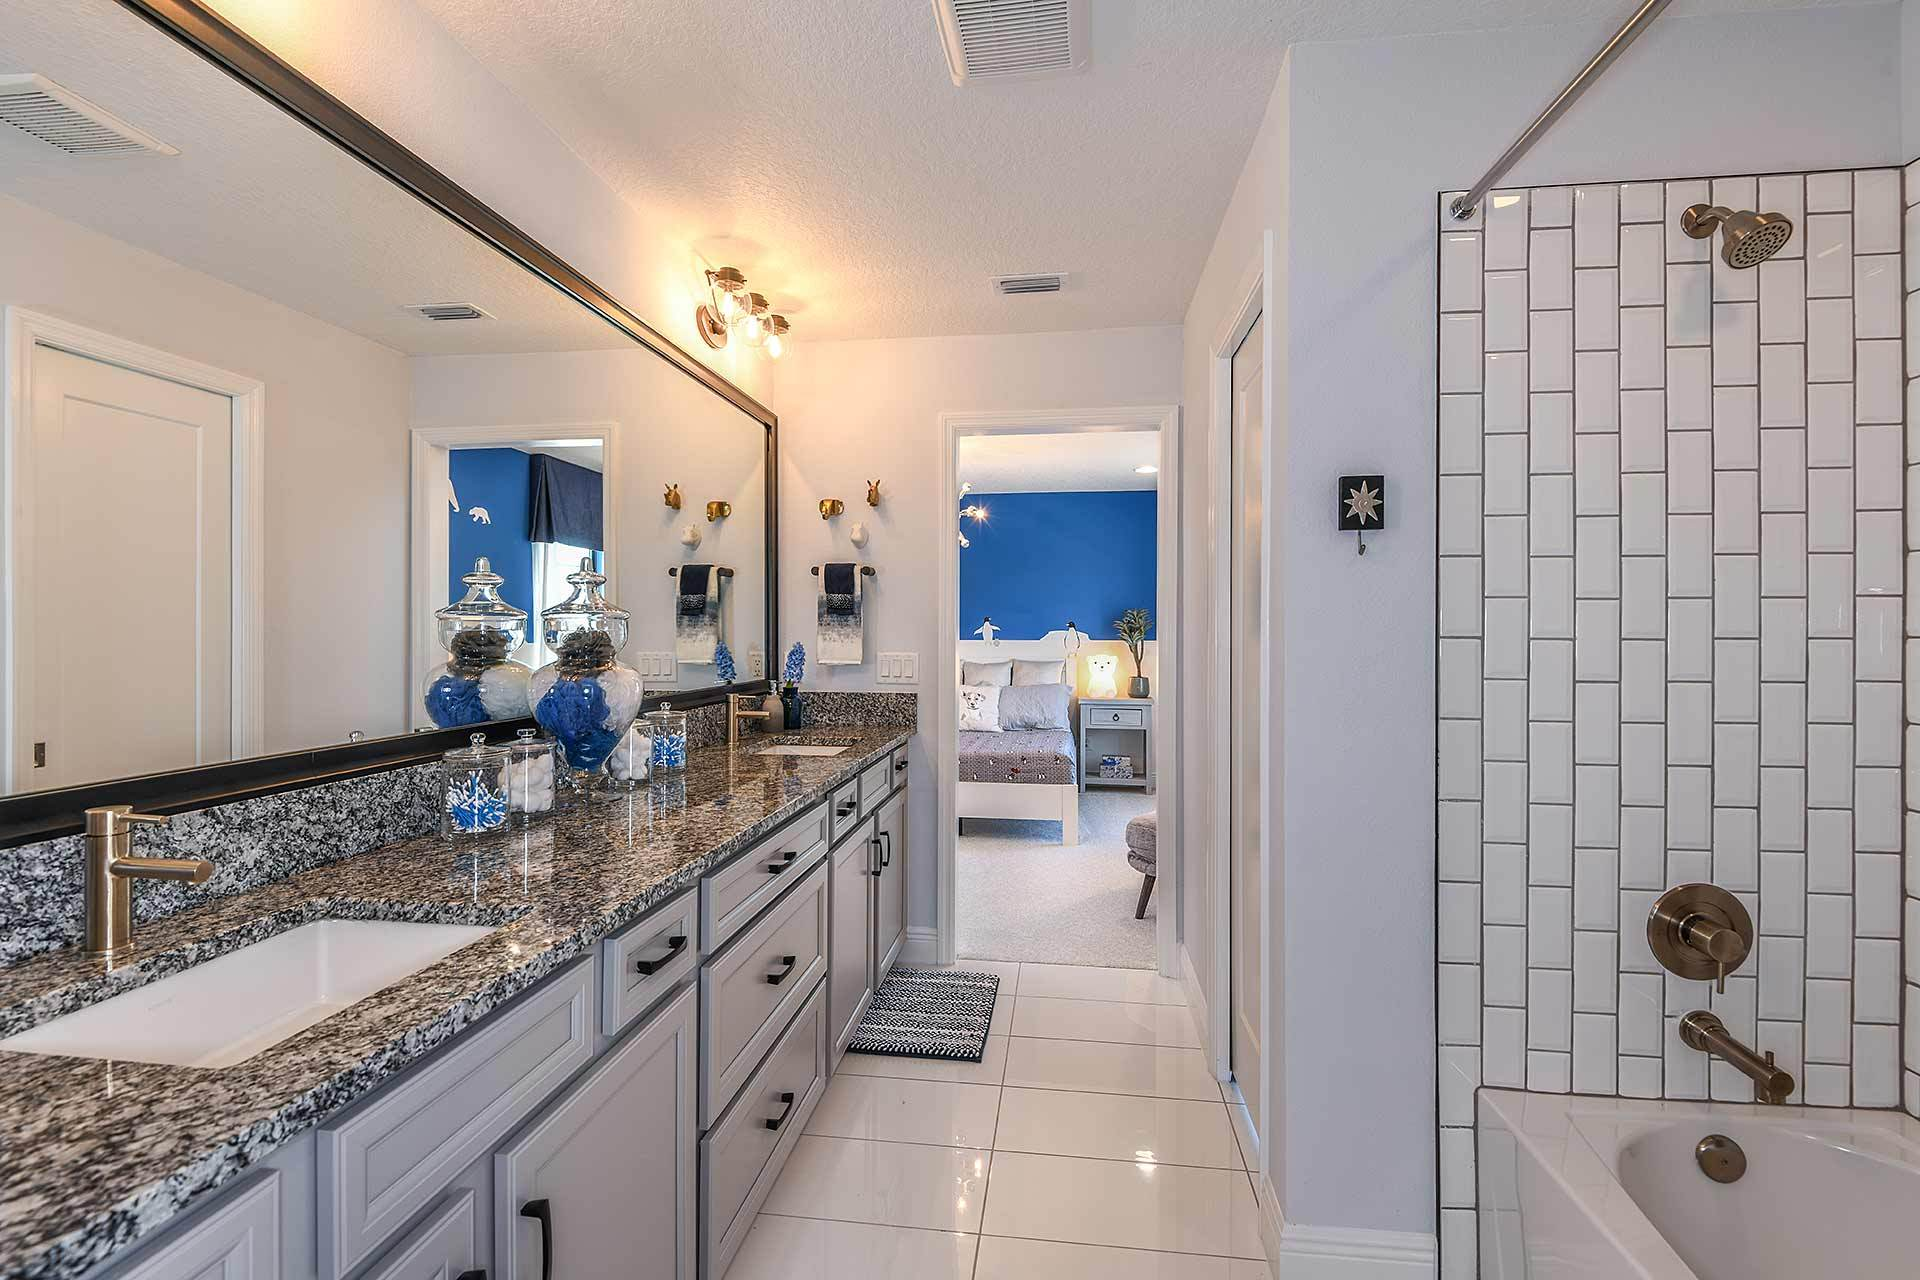 Bathroom featured in the Virginia Park By Homes by WestBay in Tampa-St. Petersburg, FL